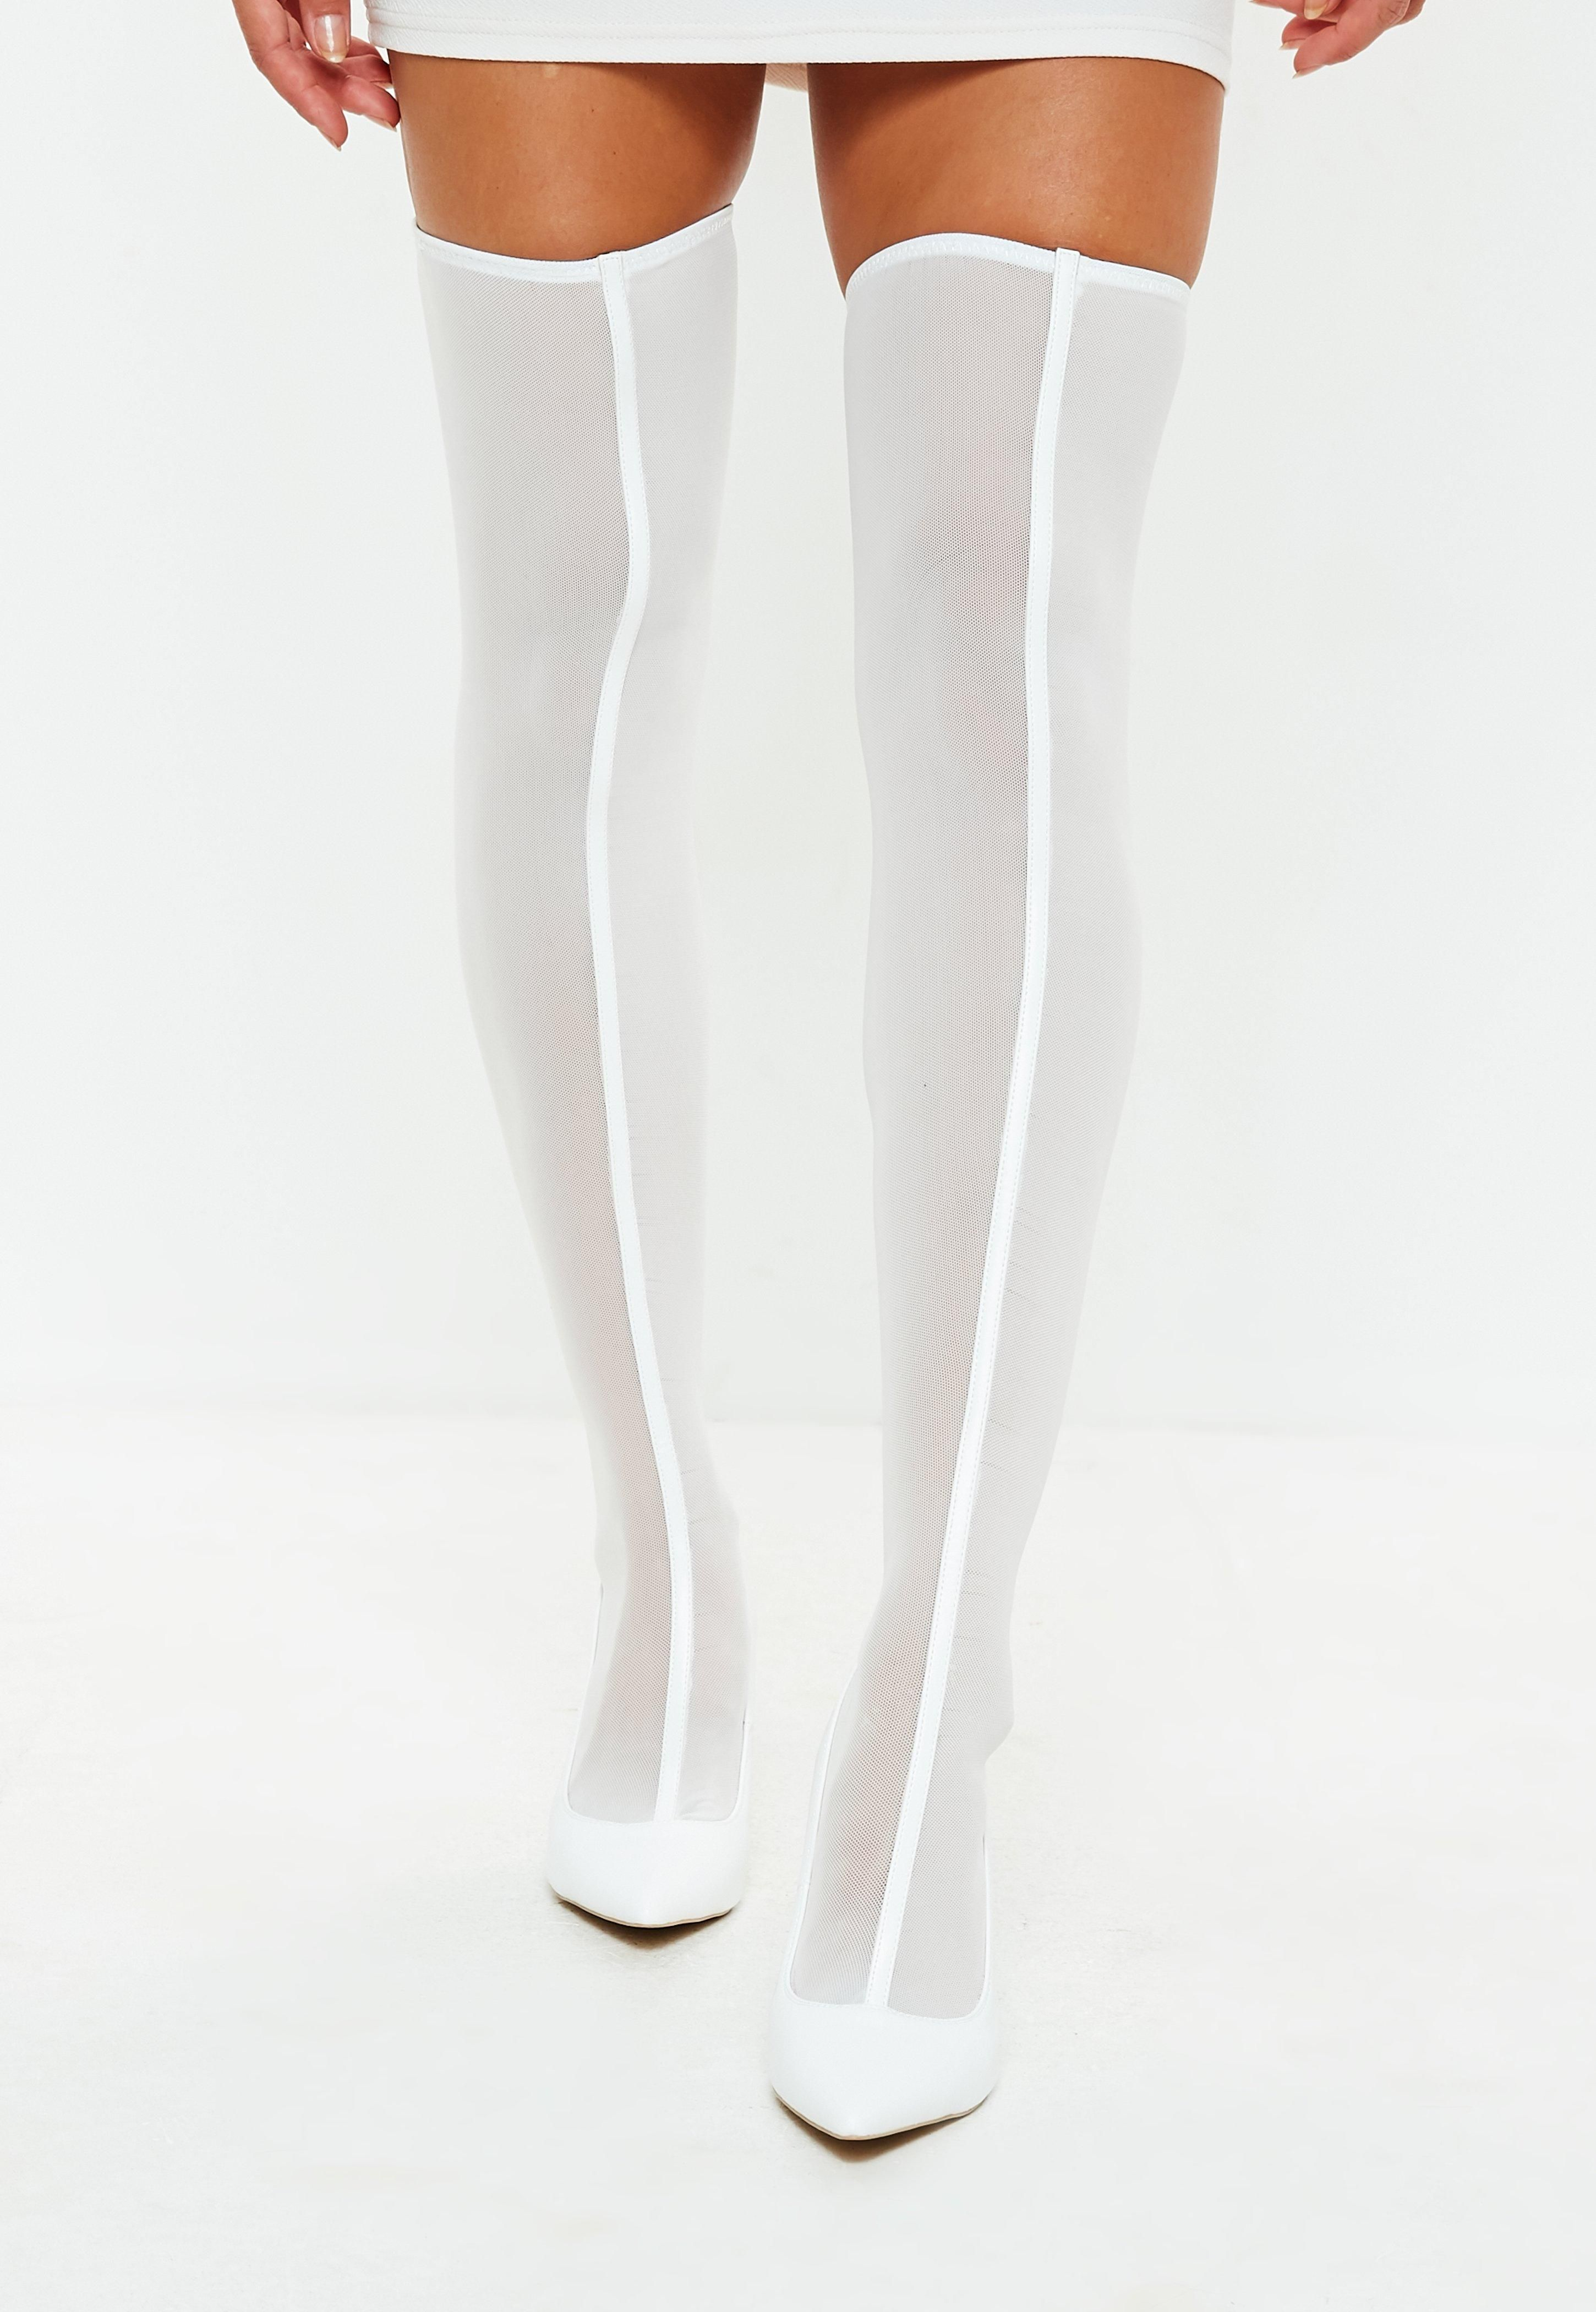 White Mesh Over The Knee Sock Boots Sponsored Mesh Affiliate White Knee Over The Knee Sock Boots Thigh High Sock Boots Socks And Heels